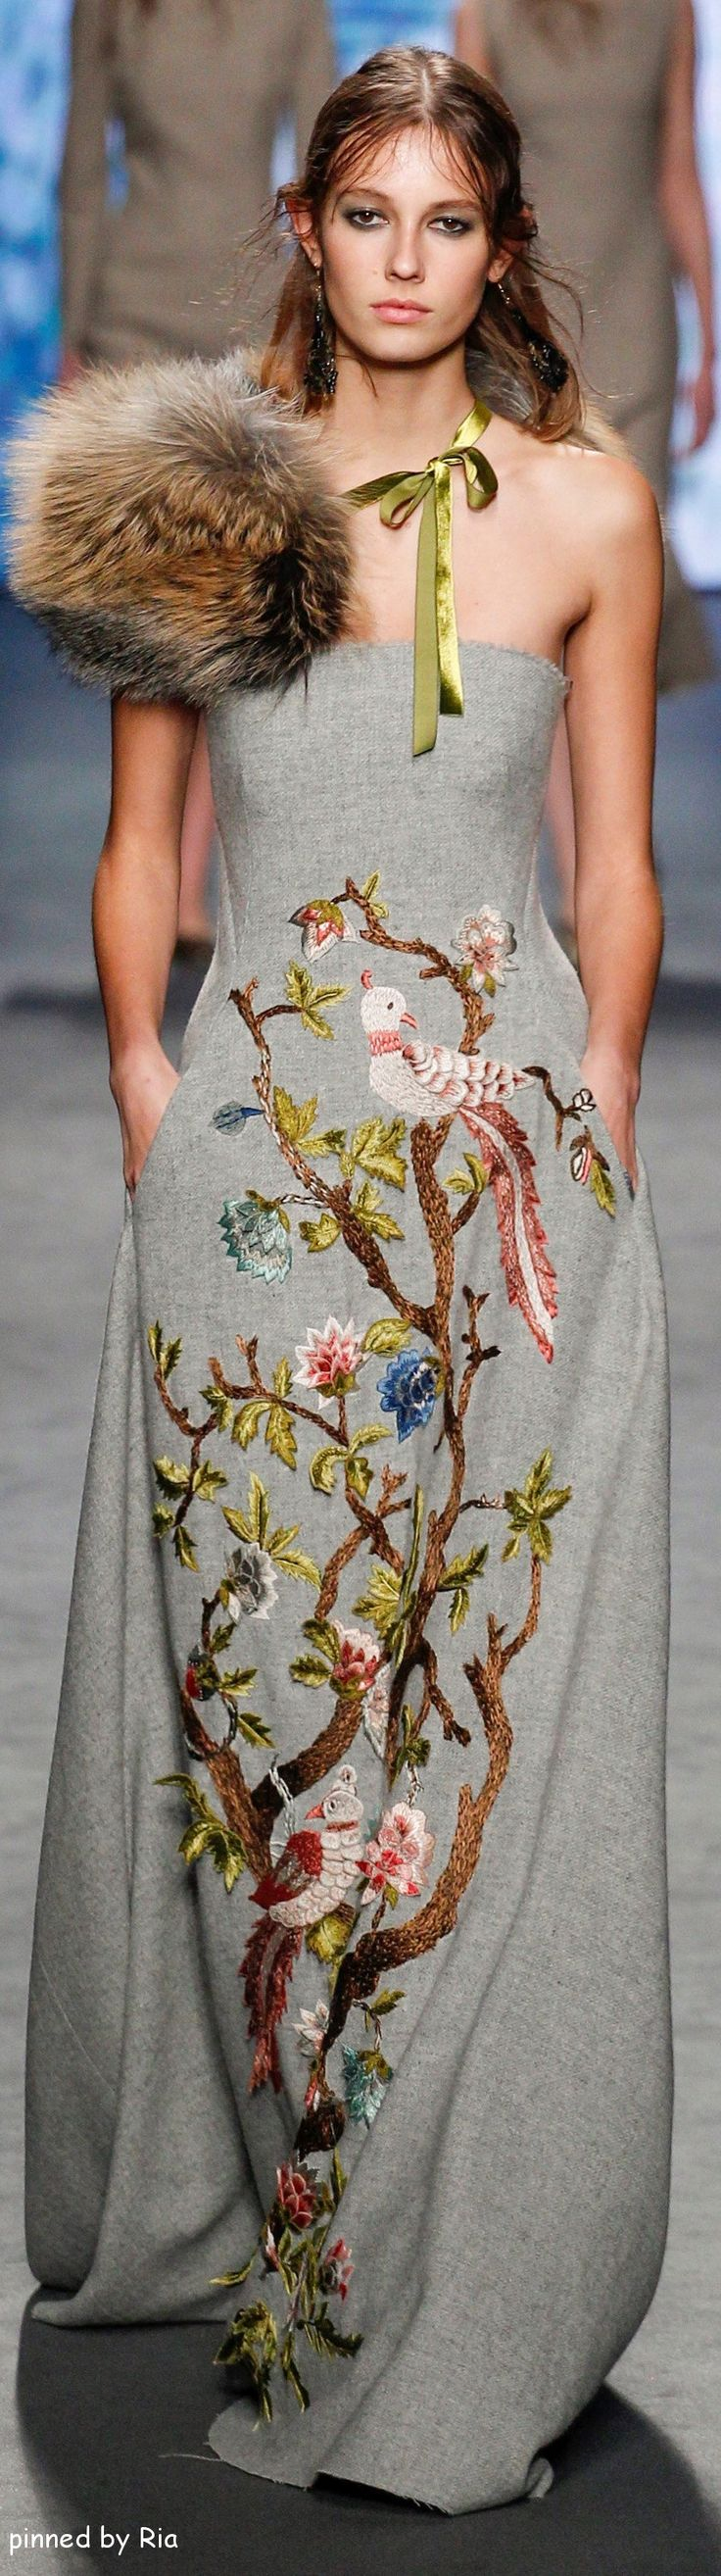 Alberta Ferretti Fall 2016 RTW / Gorgeous multicolored grey gown with bird motif and green accents